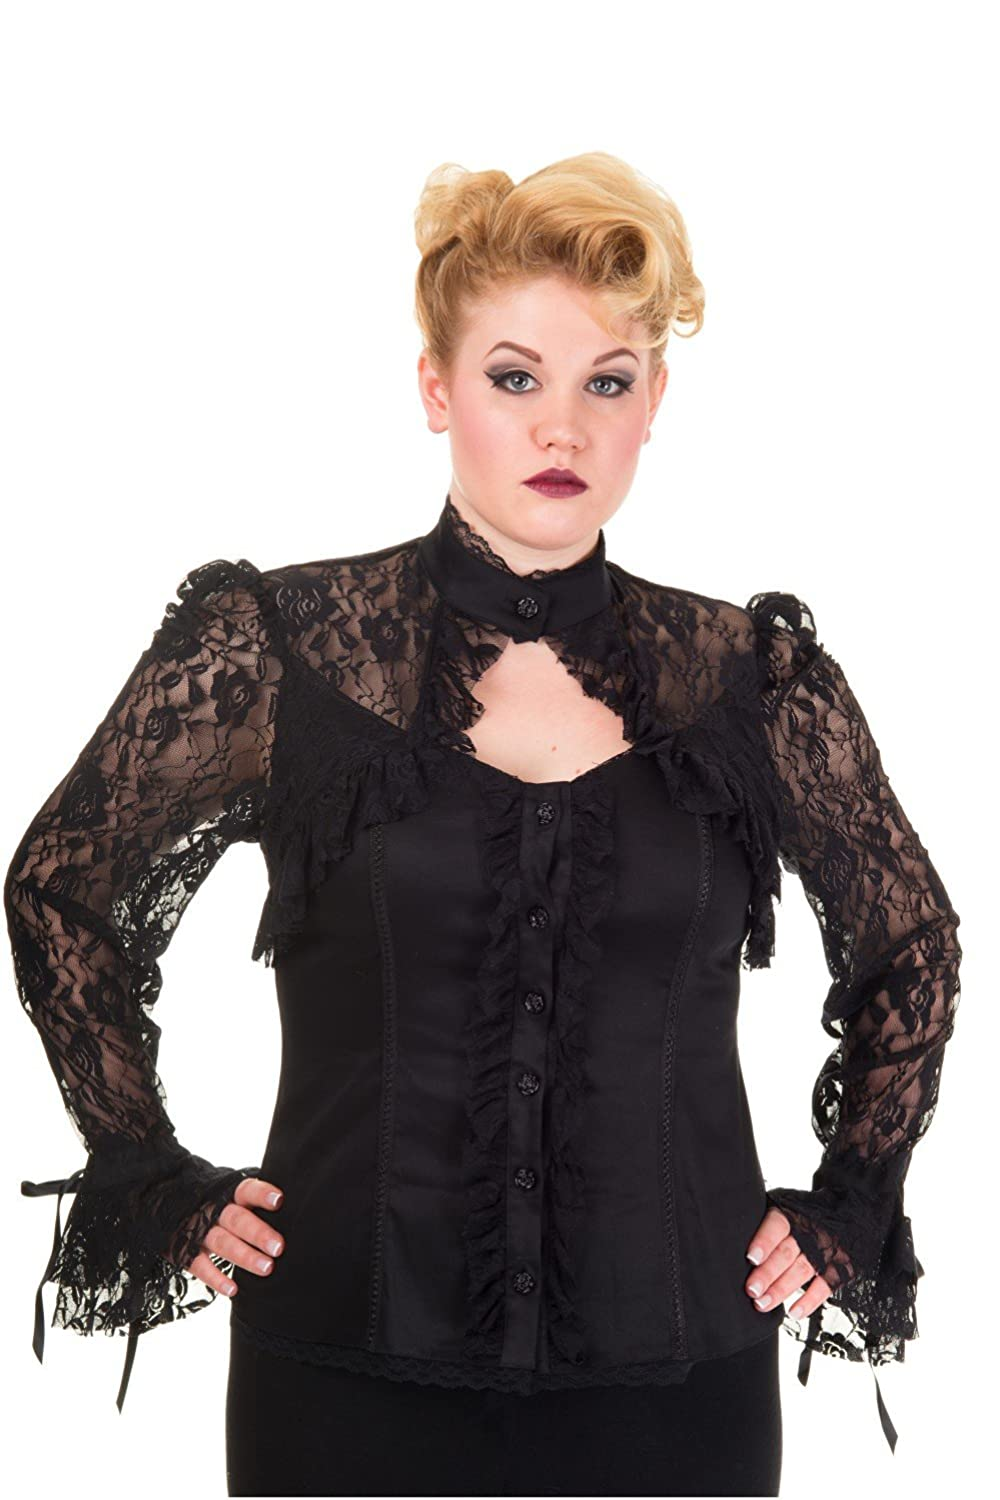 Steampunk Tops | Blouses, Shirts Steampunk Lace Top $62.00 AT vintagedancer.com